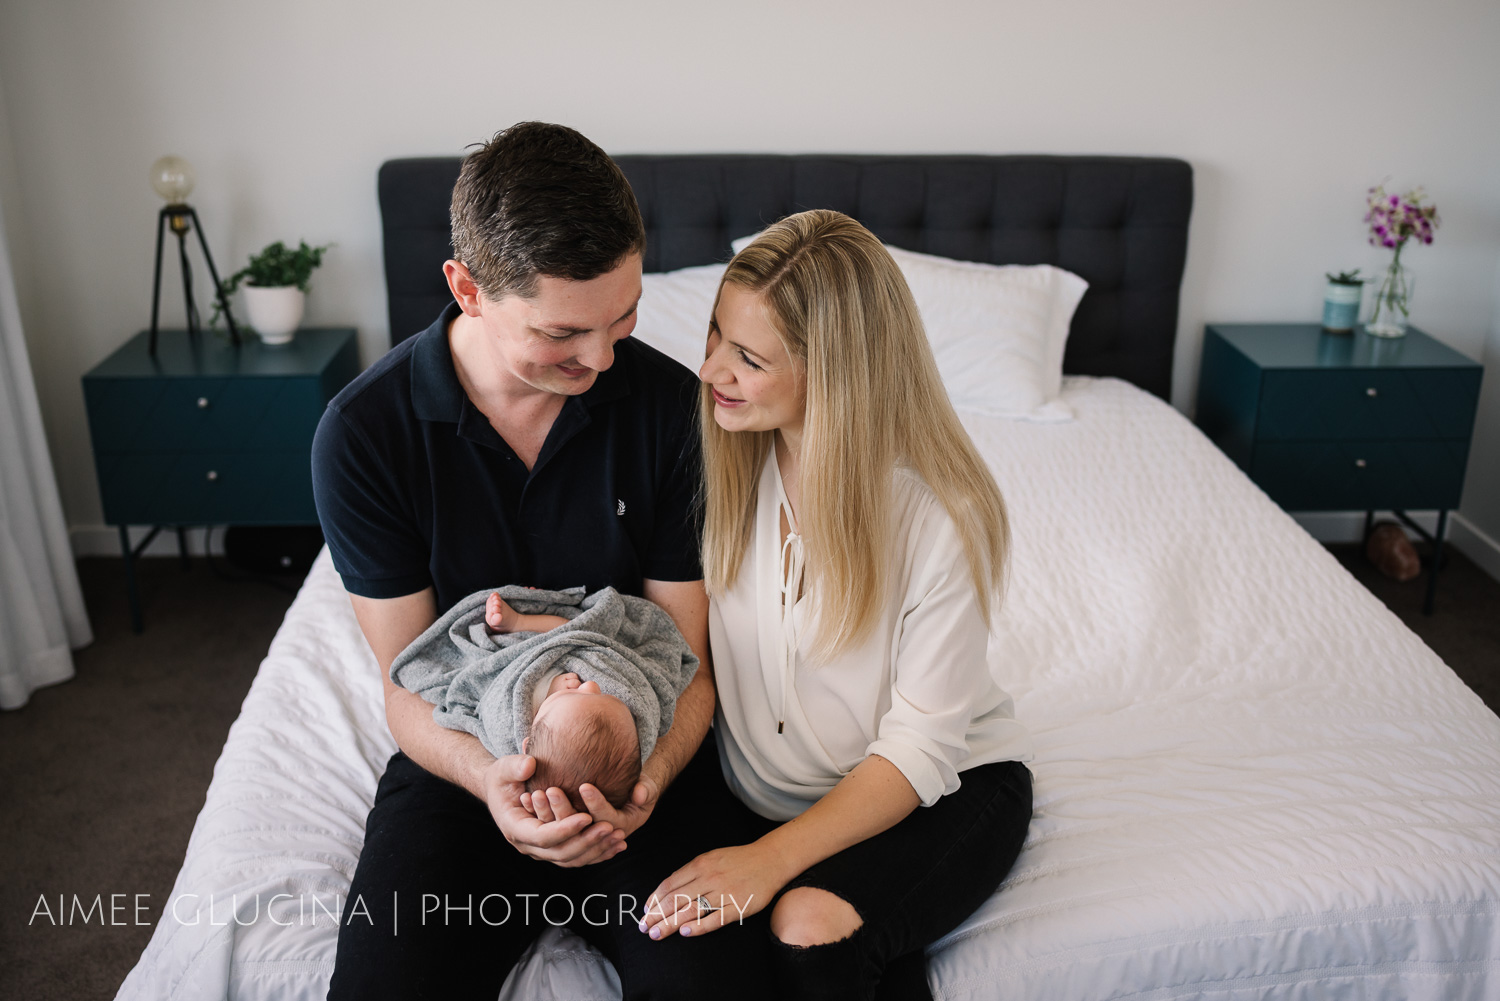 Newborn & Family Photography Session by Aimee Glucina Photography-26.jpg